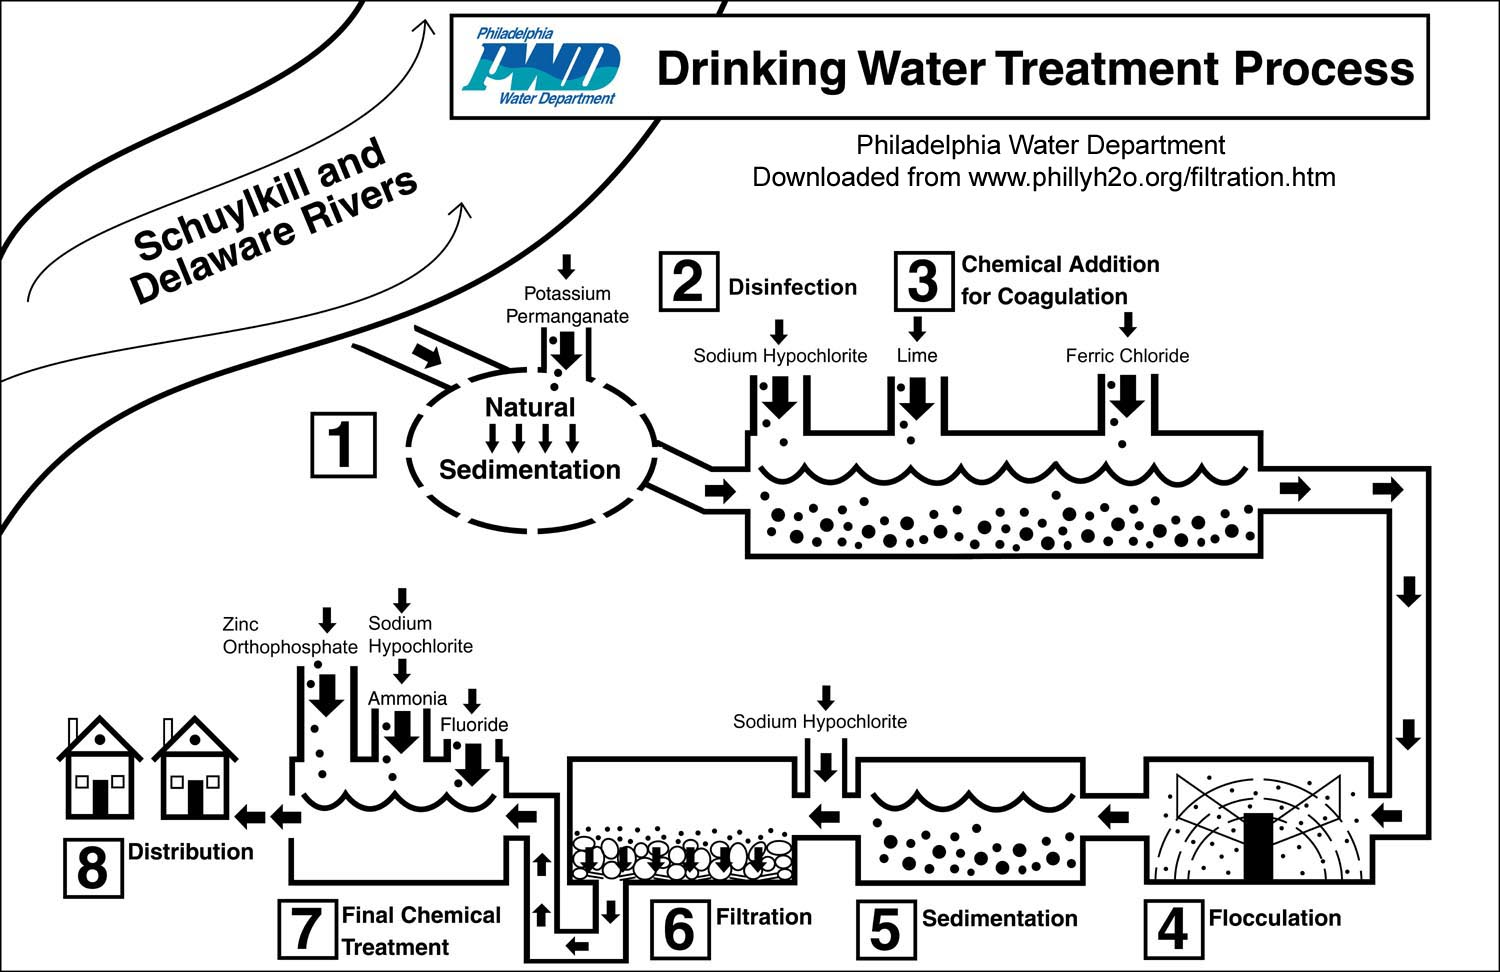 Philly h2o 100th anniversay of water filtration in philadelphia this diagram shows the many steps the philadelphia water department takes to safeguard the drinking water delivered to its customers nvjuhfo Images